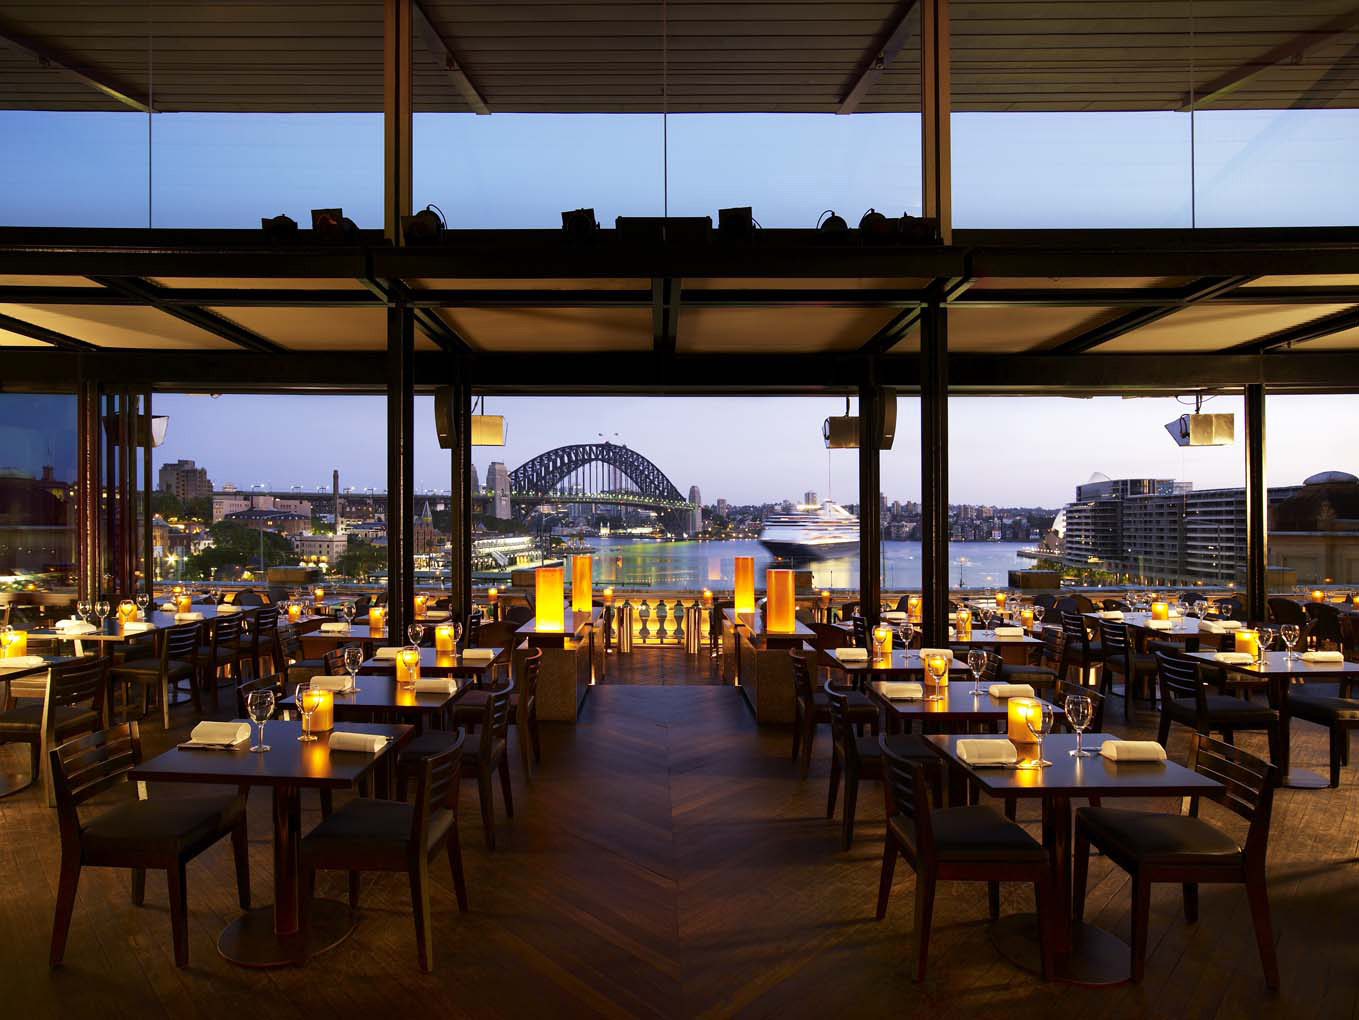 Image of the dining room with Harbour Bridge views.